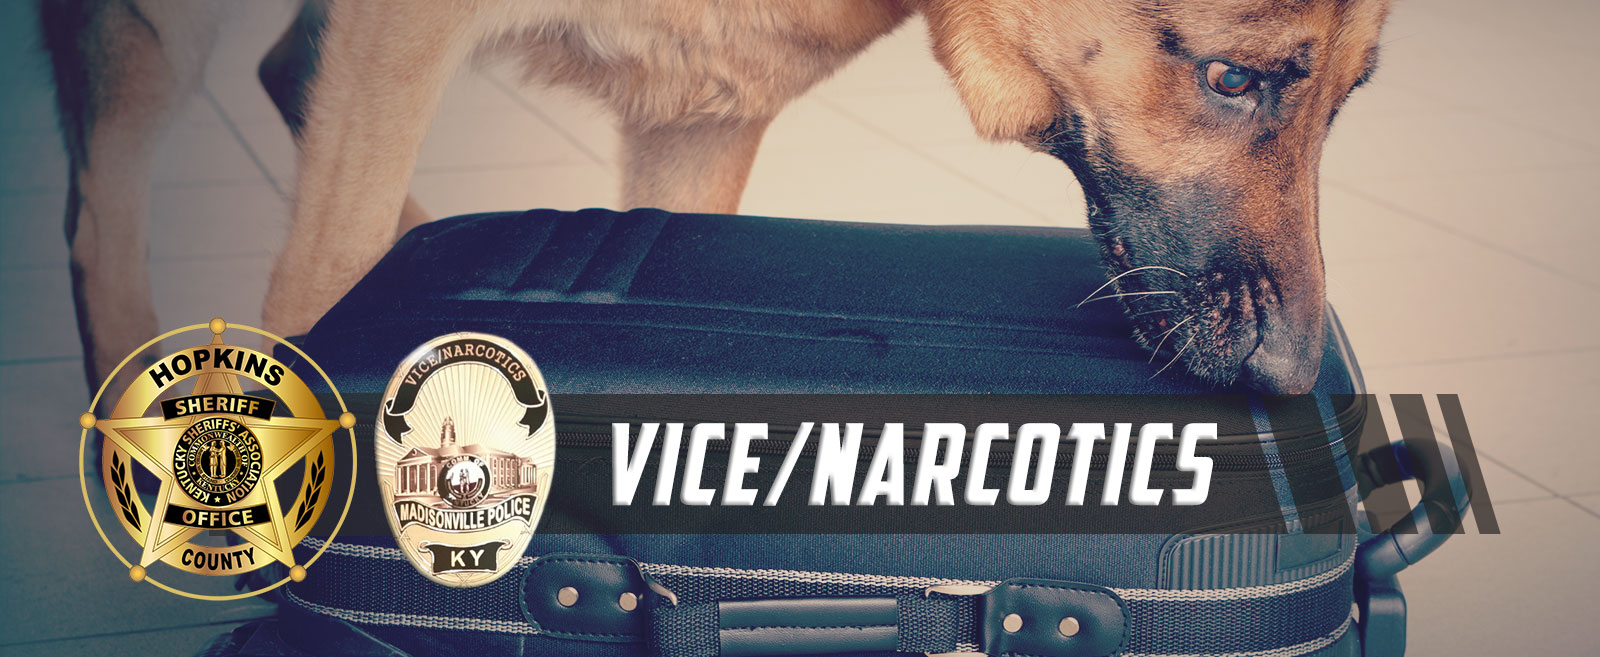 Vice/Narcotics Unit